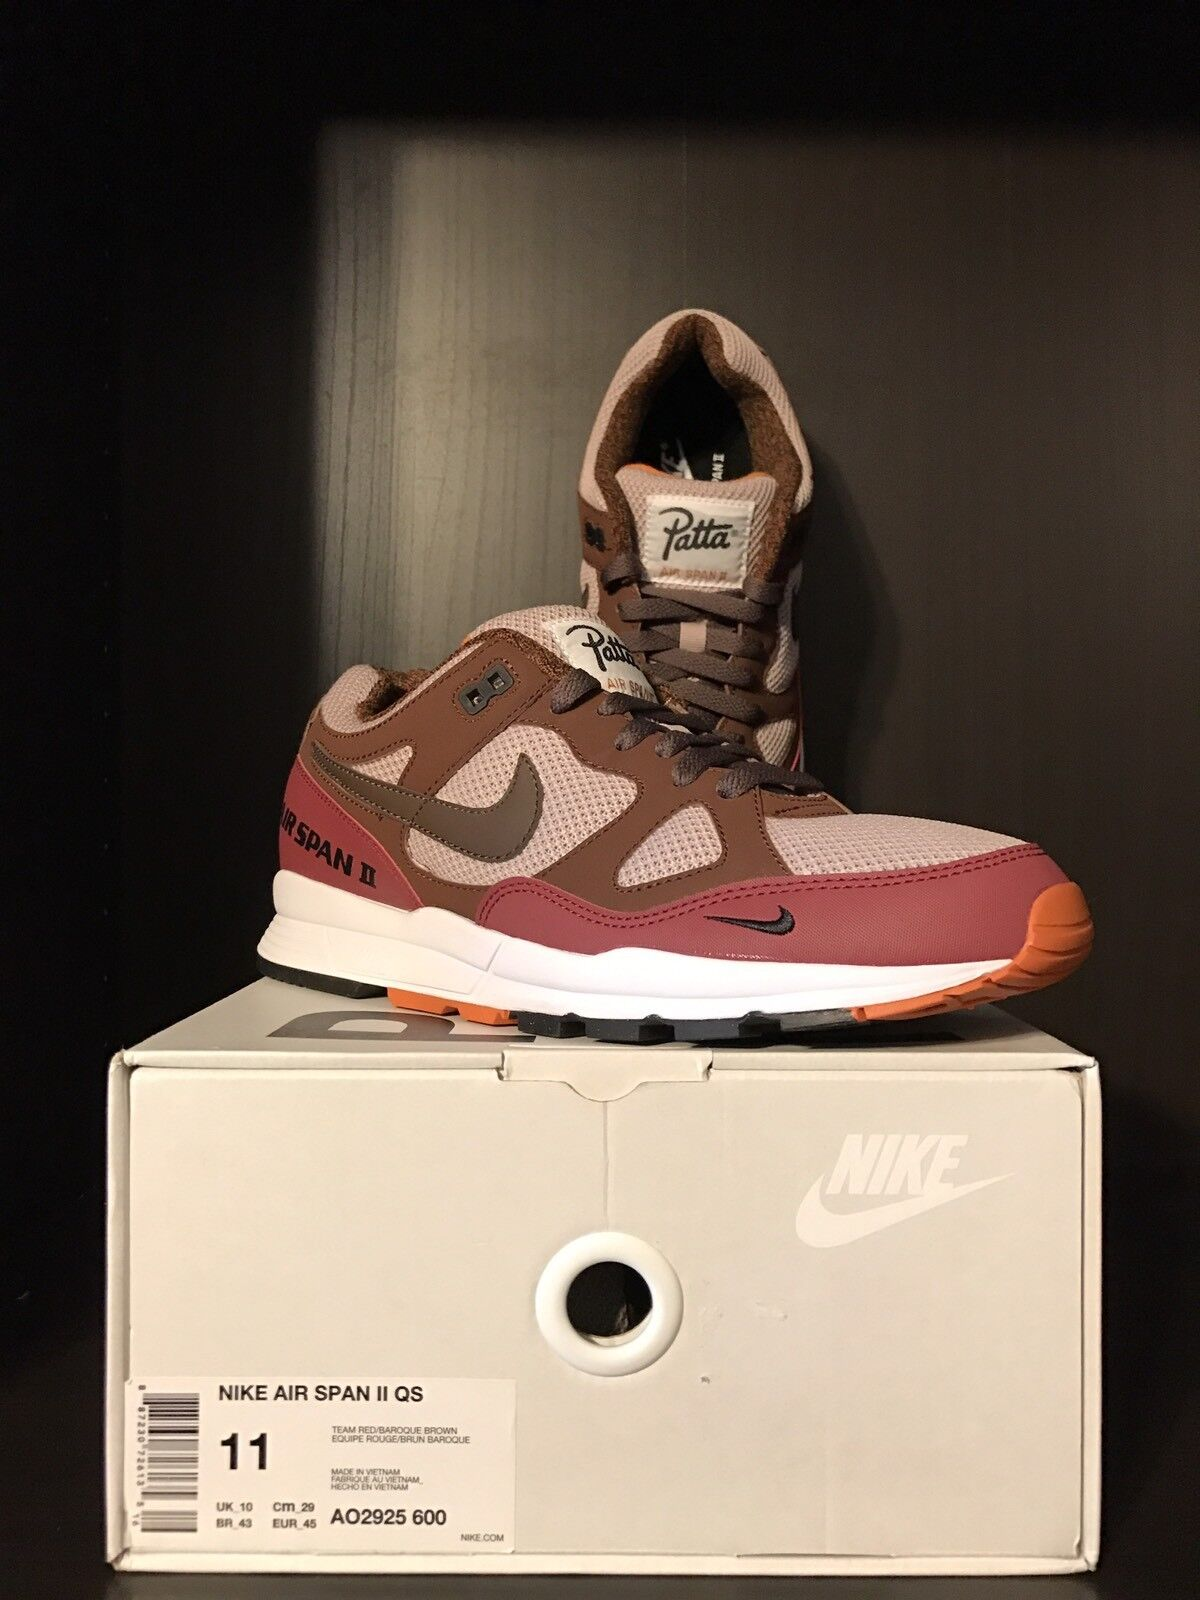 UNRELEASED Patta x Nike Air Span 2 QS   Quickstrike - Size 11 - RARE